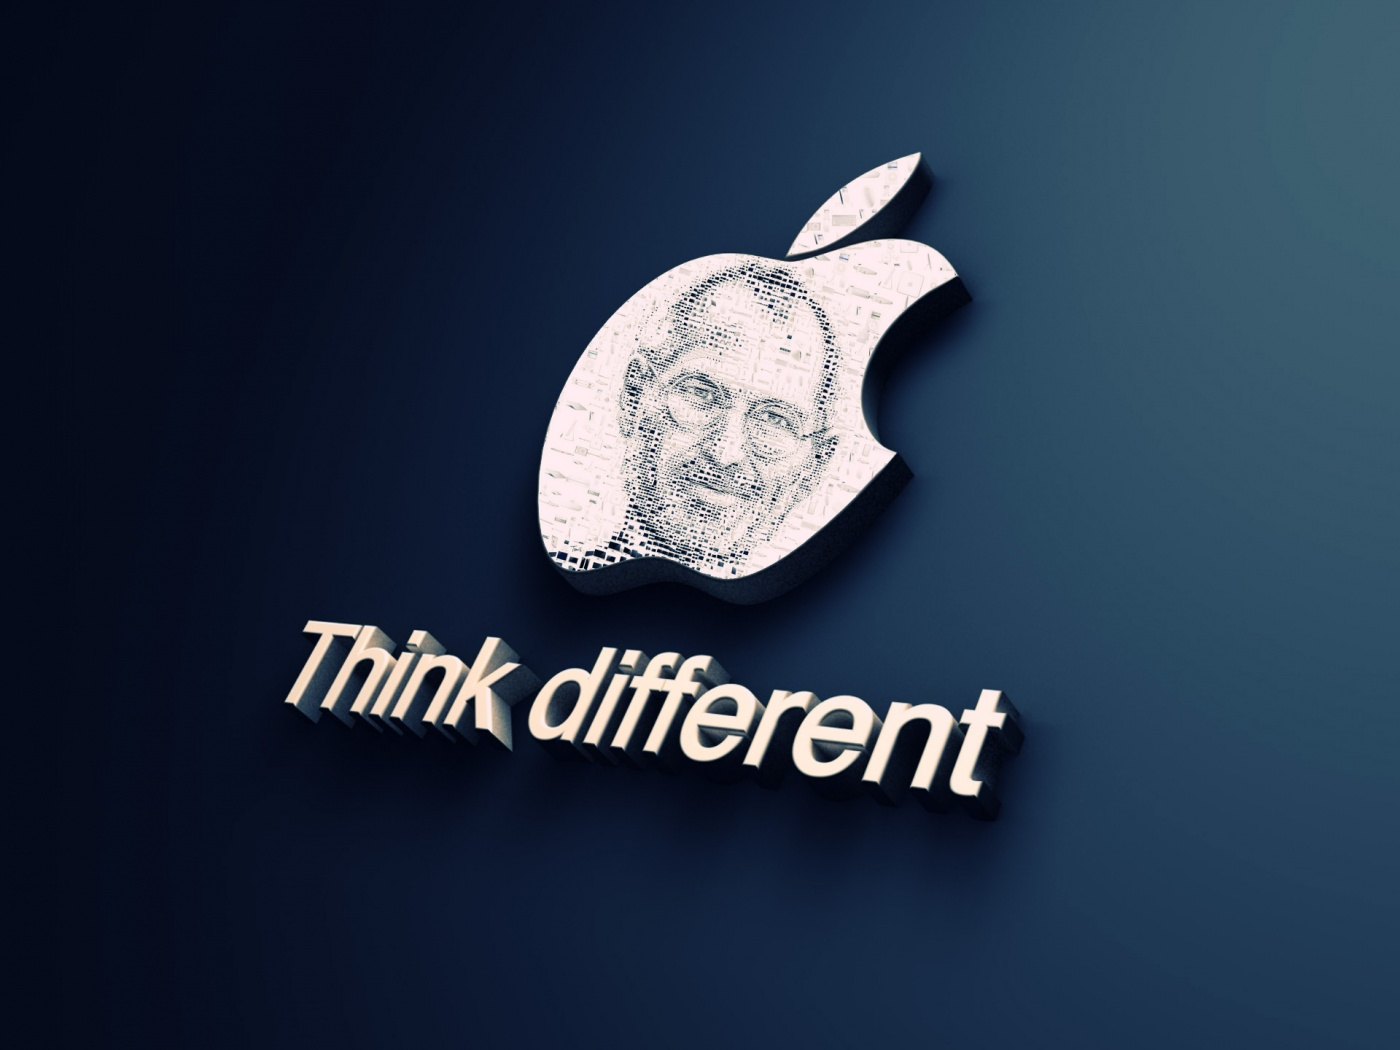 One Year Later, Steve Jobs Remains Forever Missed